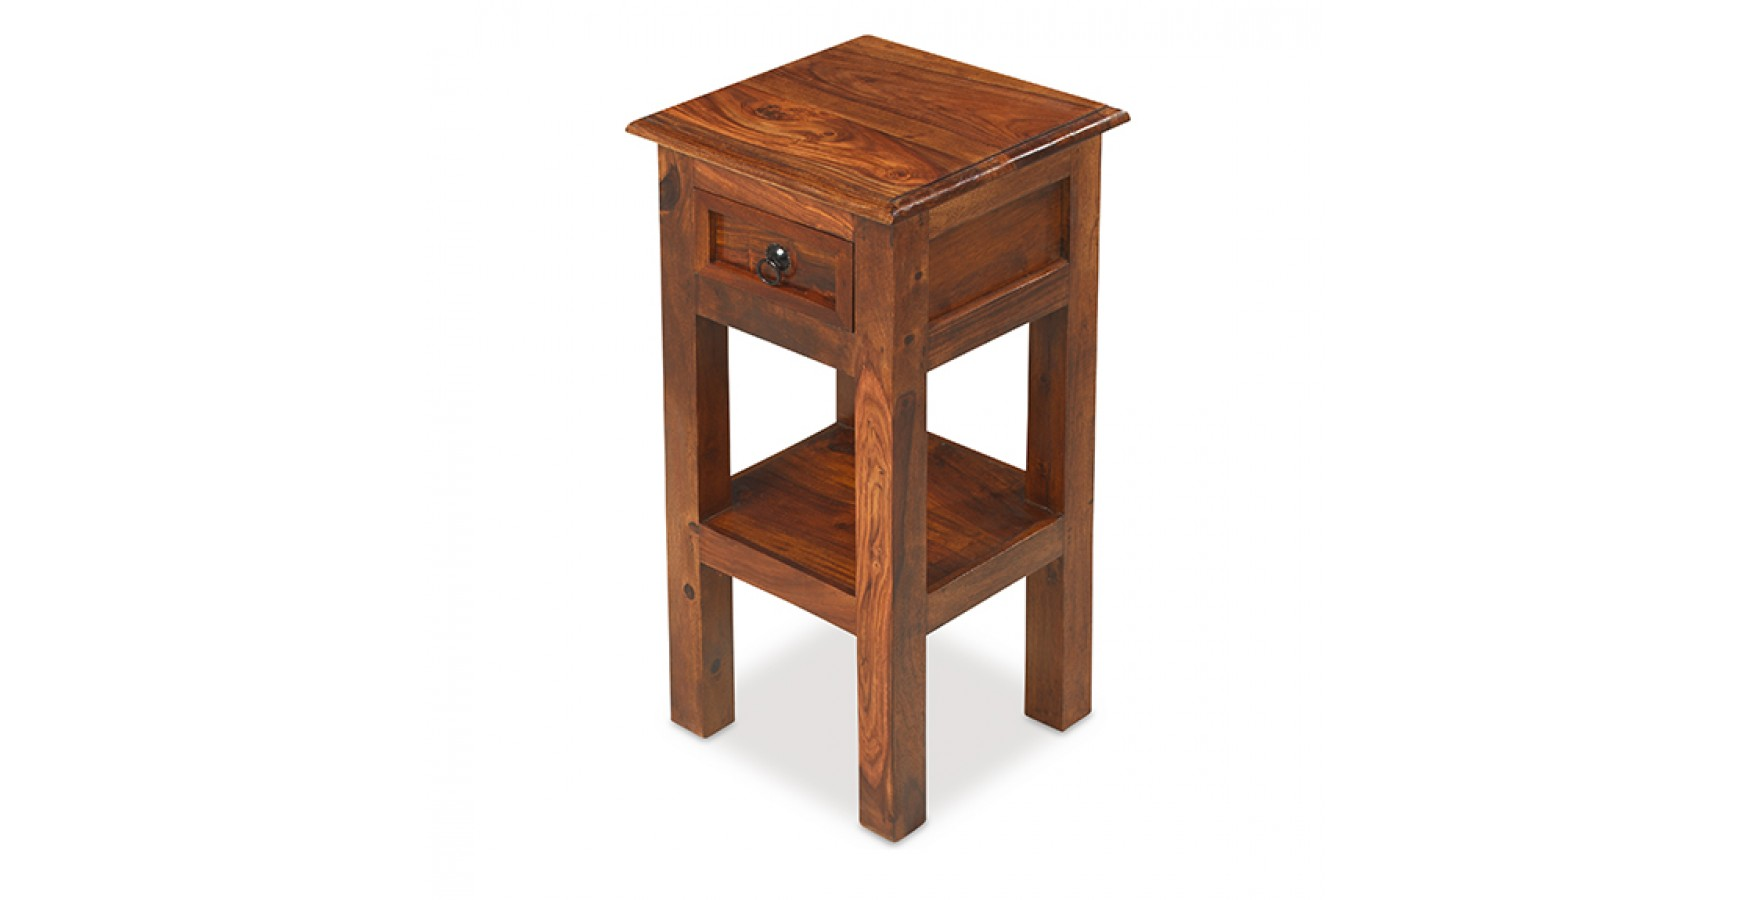 room oak living telephone unit hall wood solid oakley oakwood hallway side small end table village console products